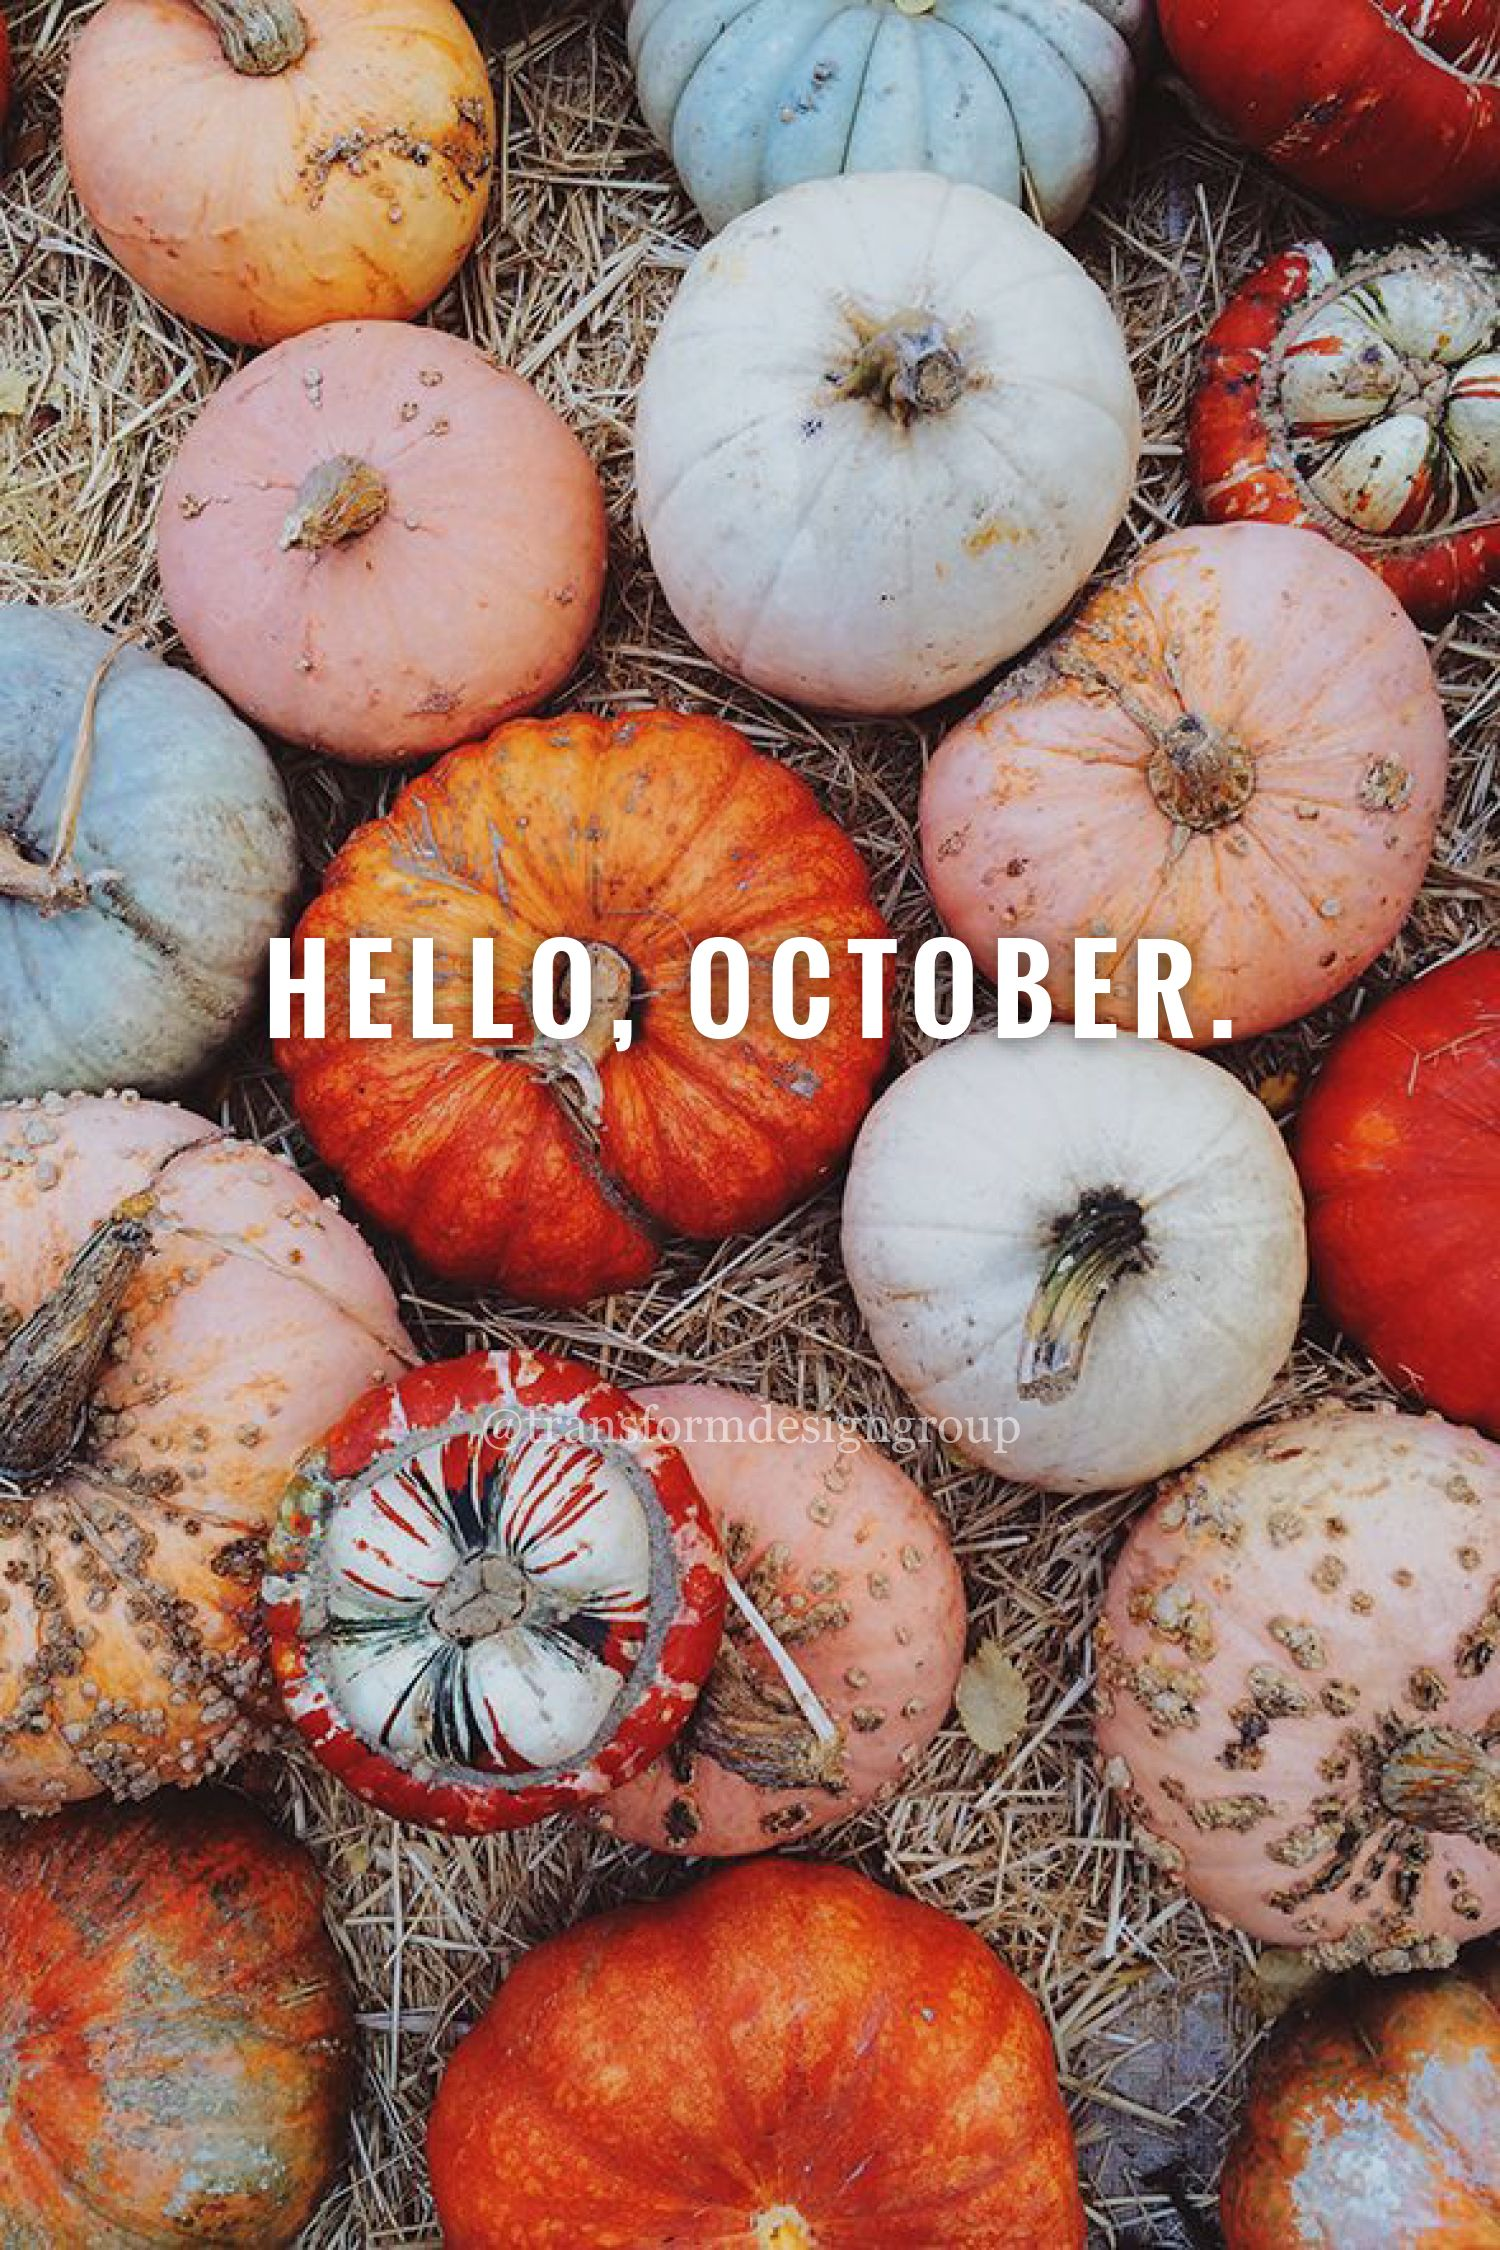 Hello, October! #October #HelloOctober #HiOctober #WelcomeOctober #Pumpkins #TransformDesignGroup #Fall #GraphicDesign